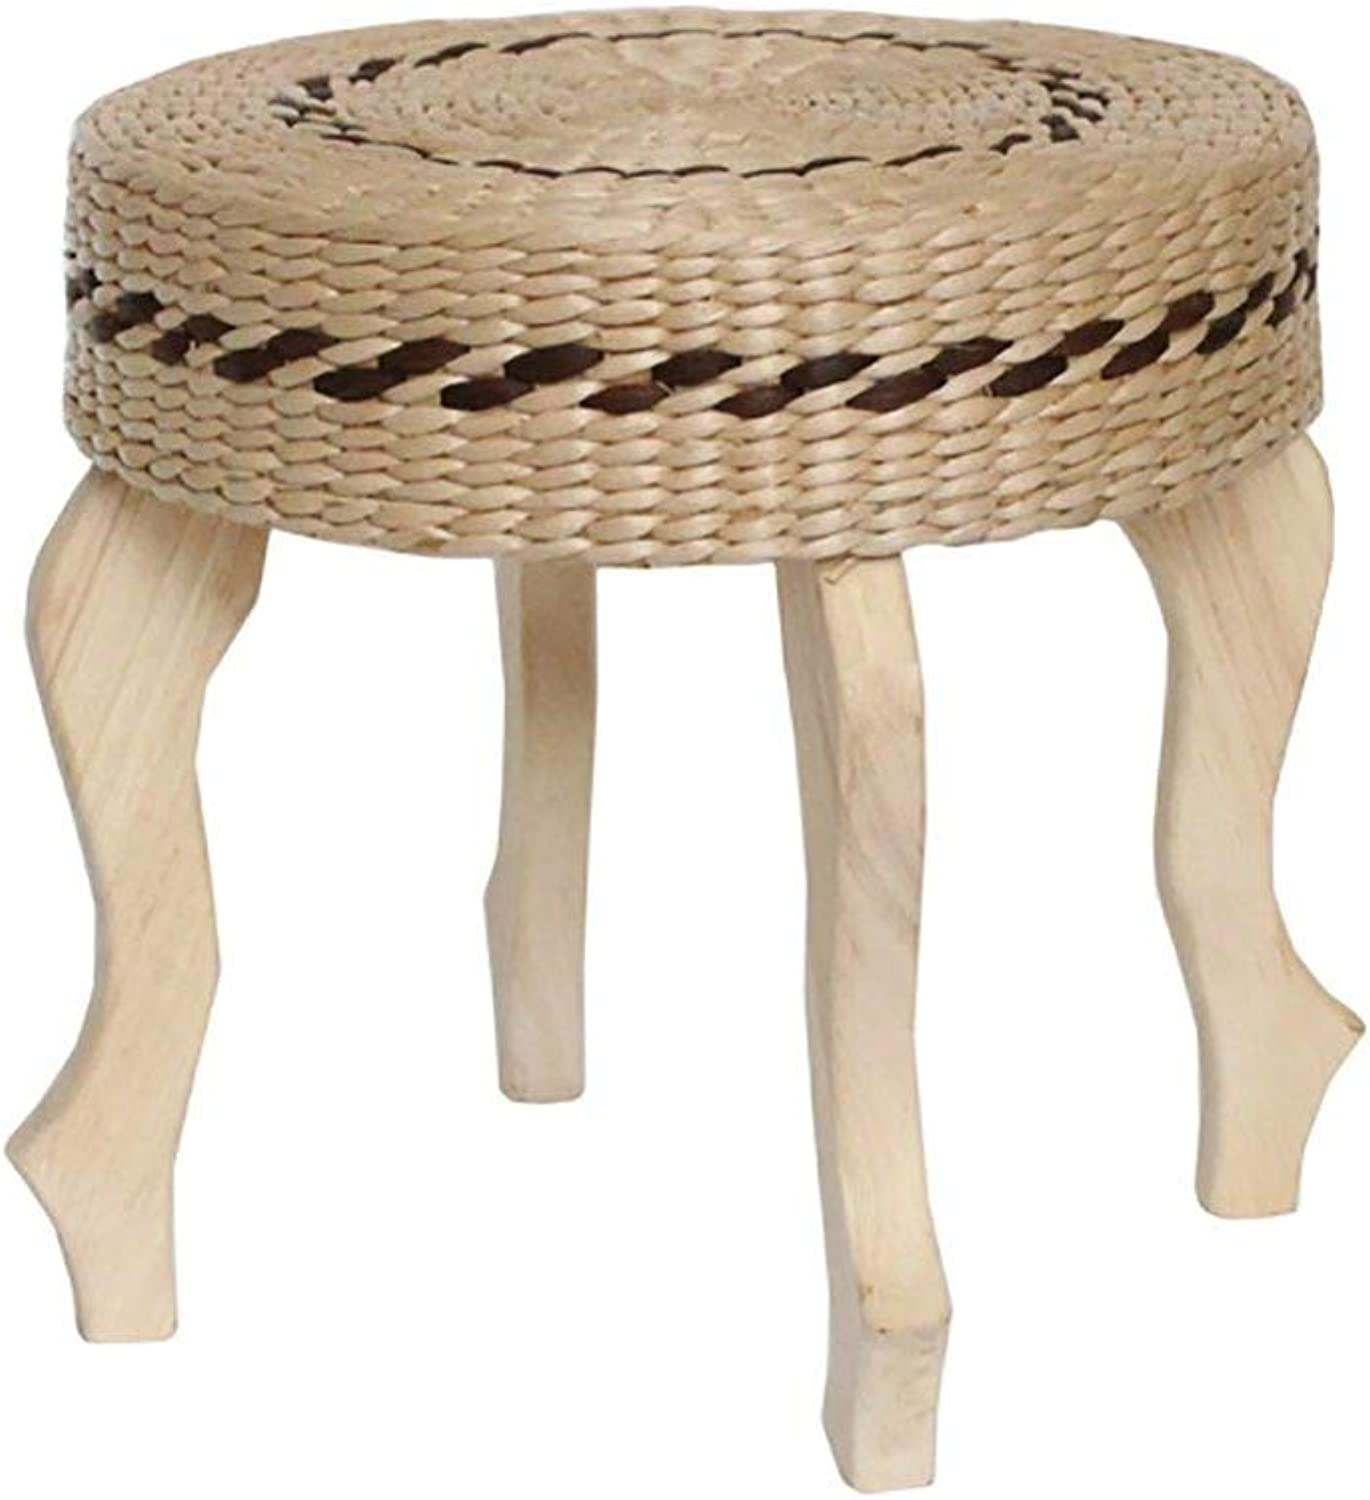 Modern Fashion Hand - Woven Table Stool Stool Wood Stool Knit Stool Natural Weaving Living Room Stool CONGMING (color   A)